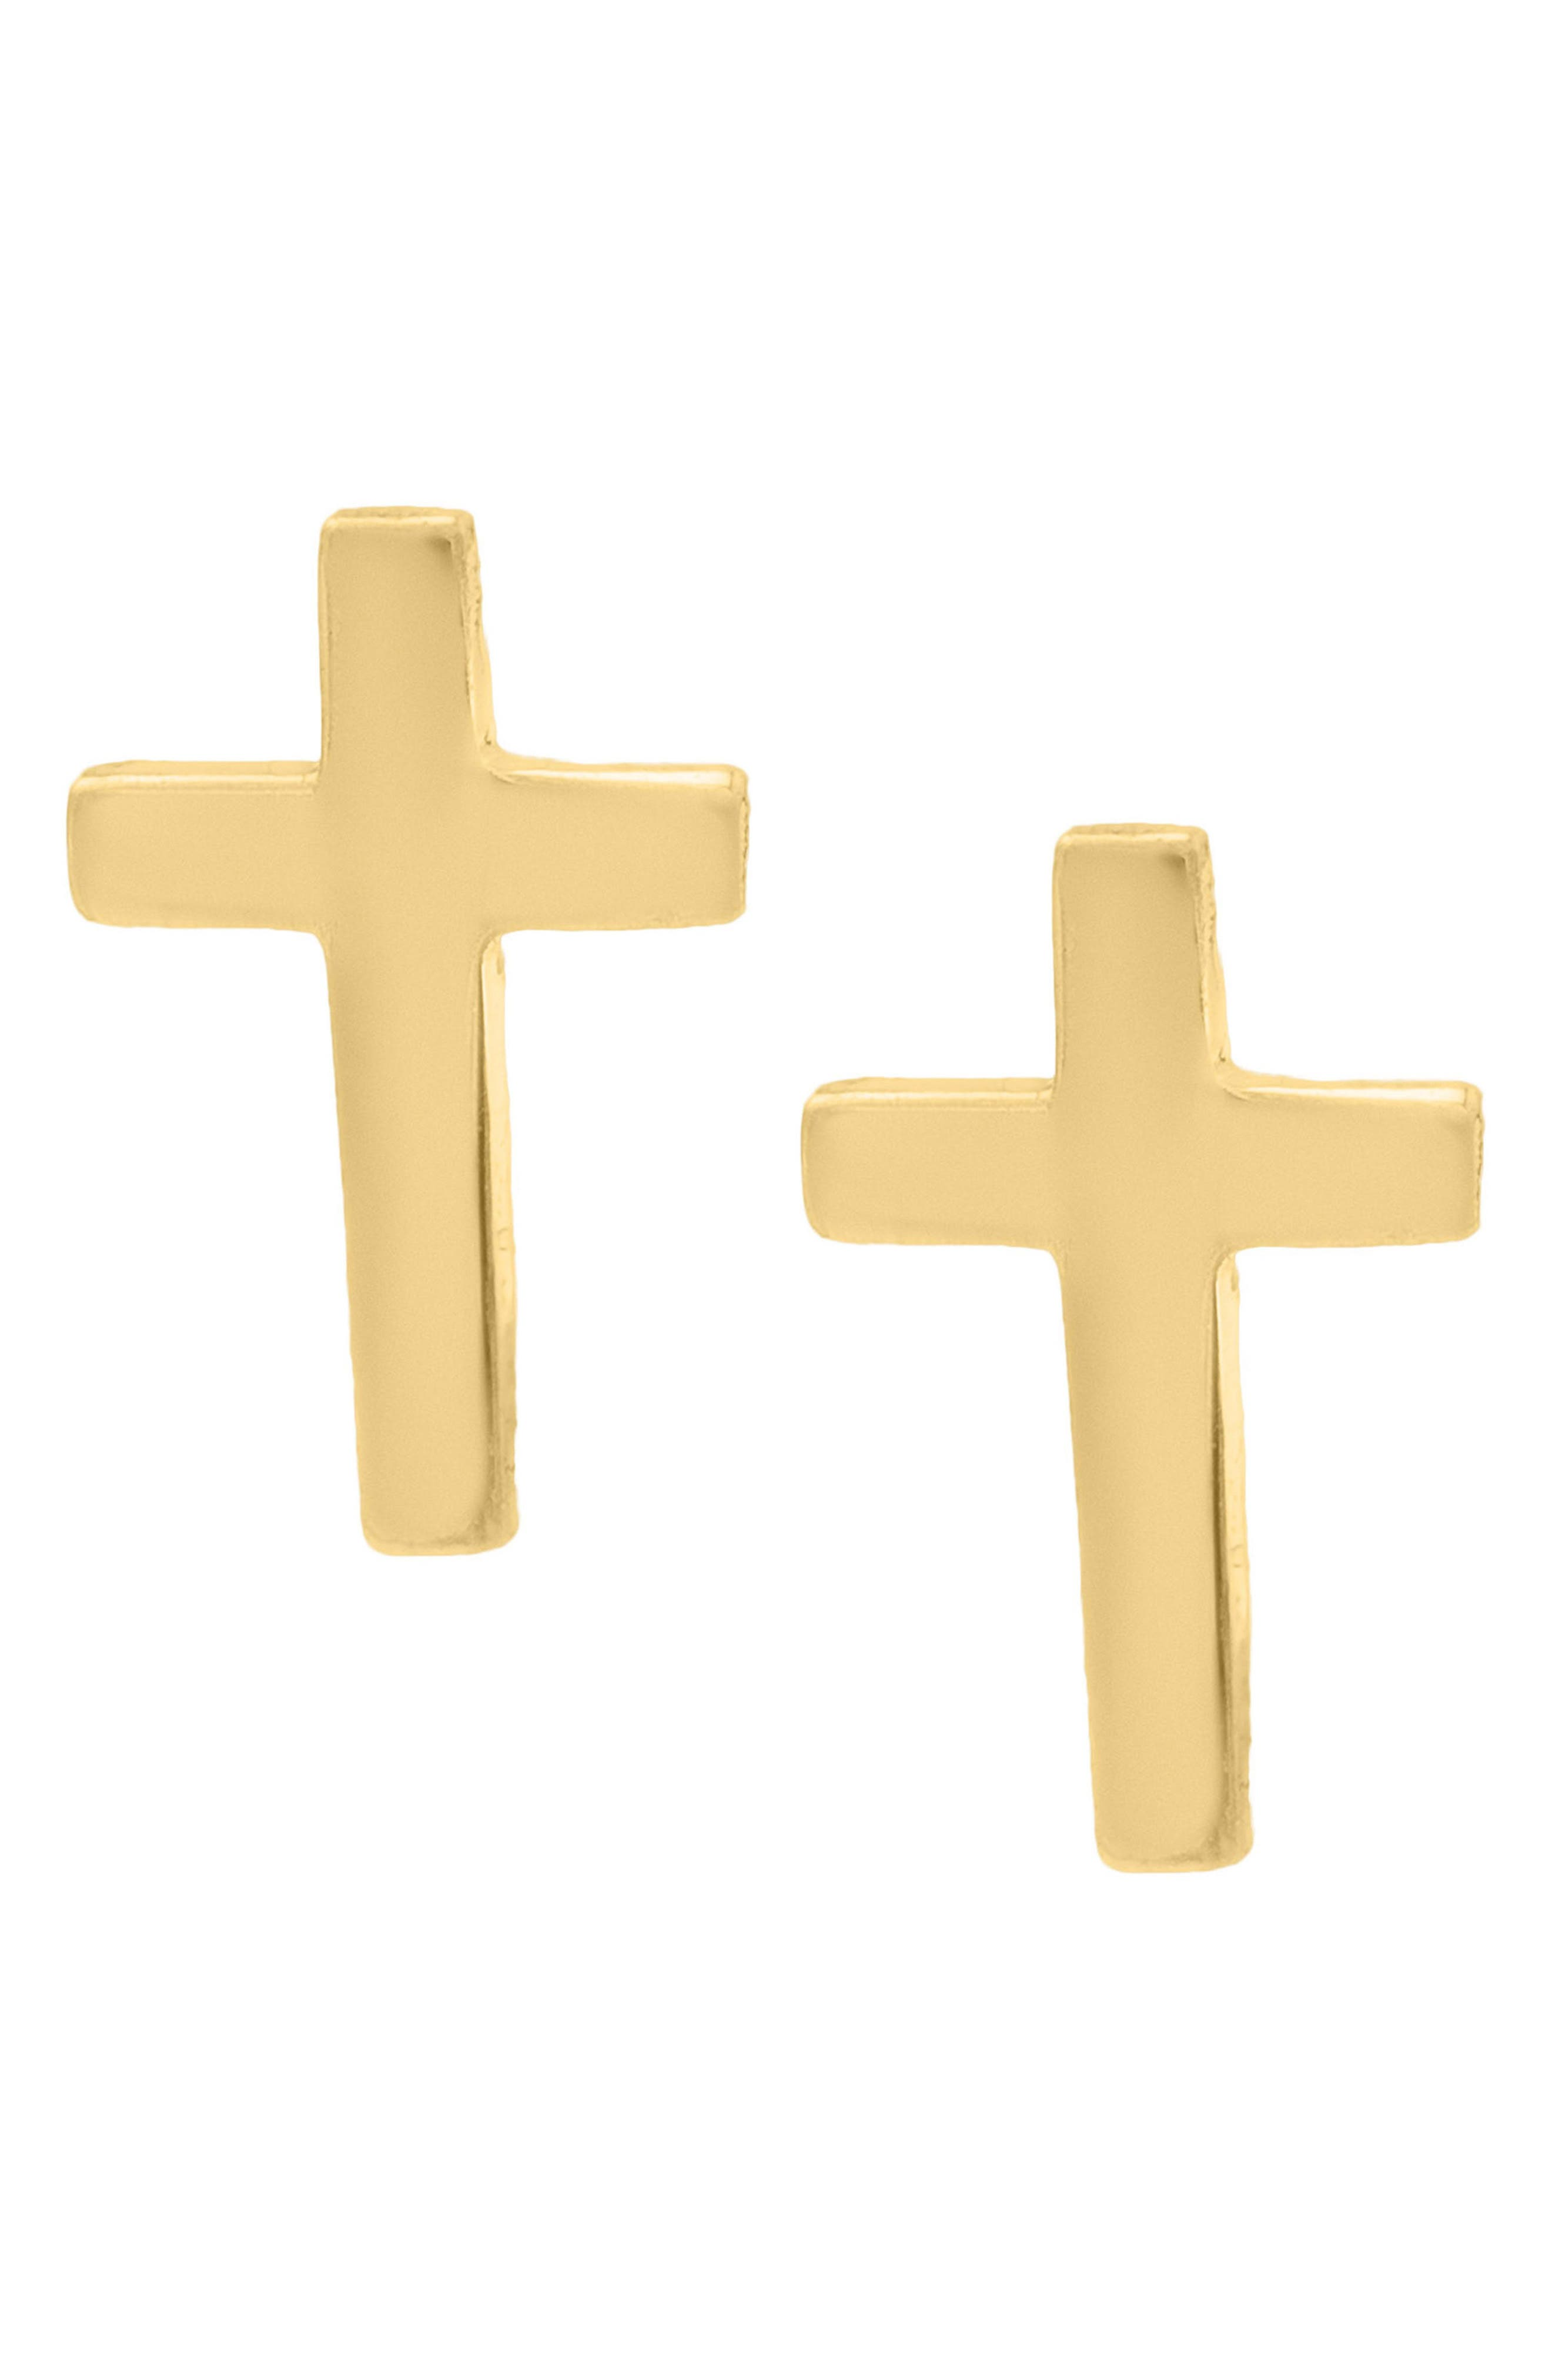 14k Gold Cross Stud Earrings,                             Alternate thumbnail 3, color,                             Gold